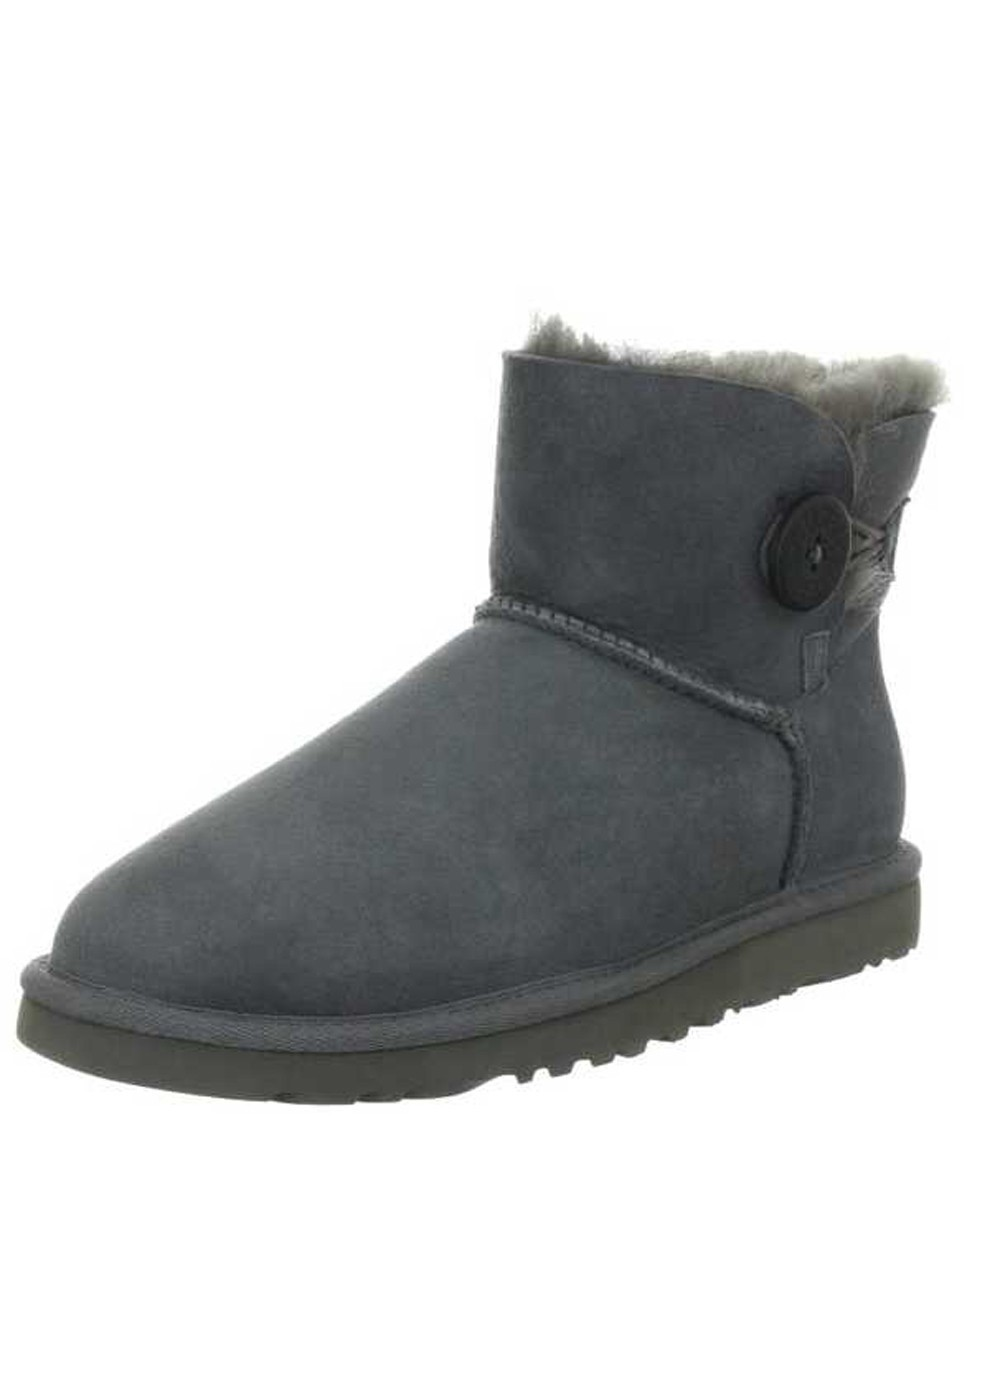 Mini Bailey Button II 【Grey】【UGG】|Grey|ブーツ|UGG (M&C)|最大35%OFF